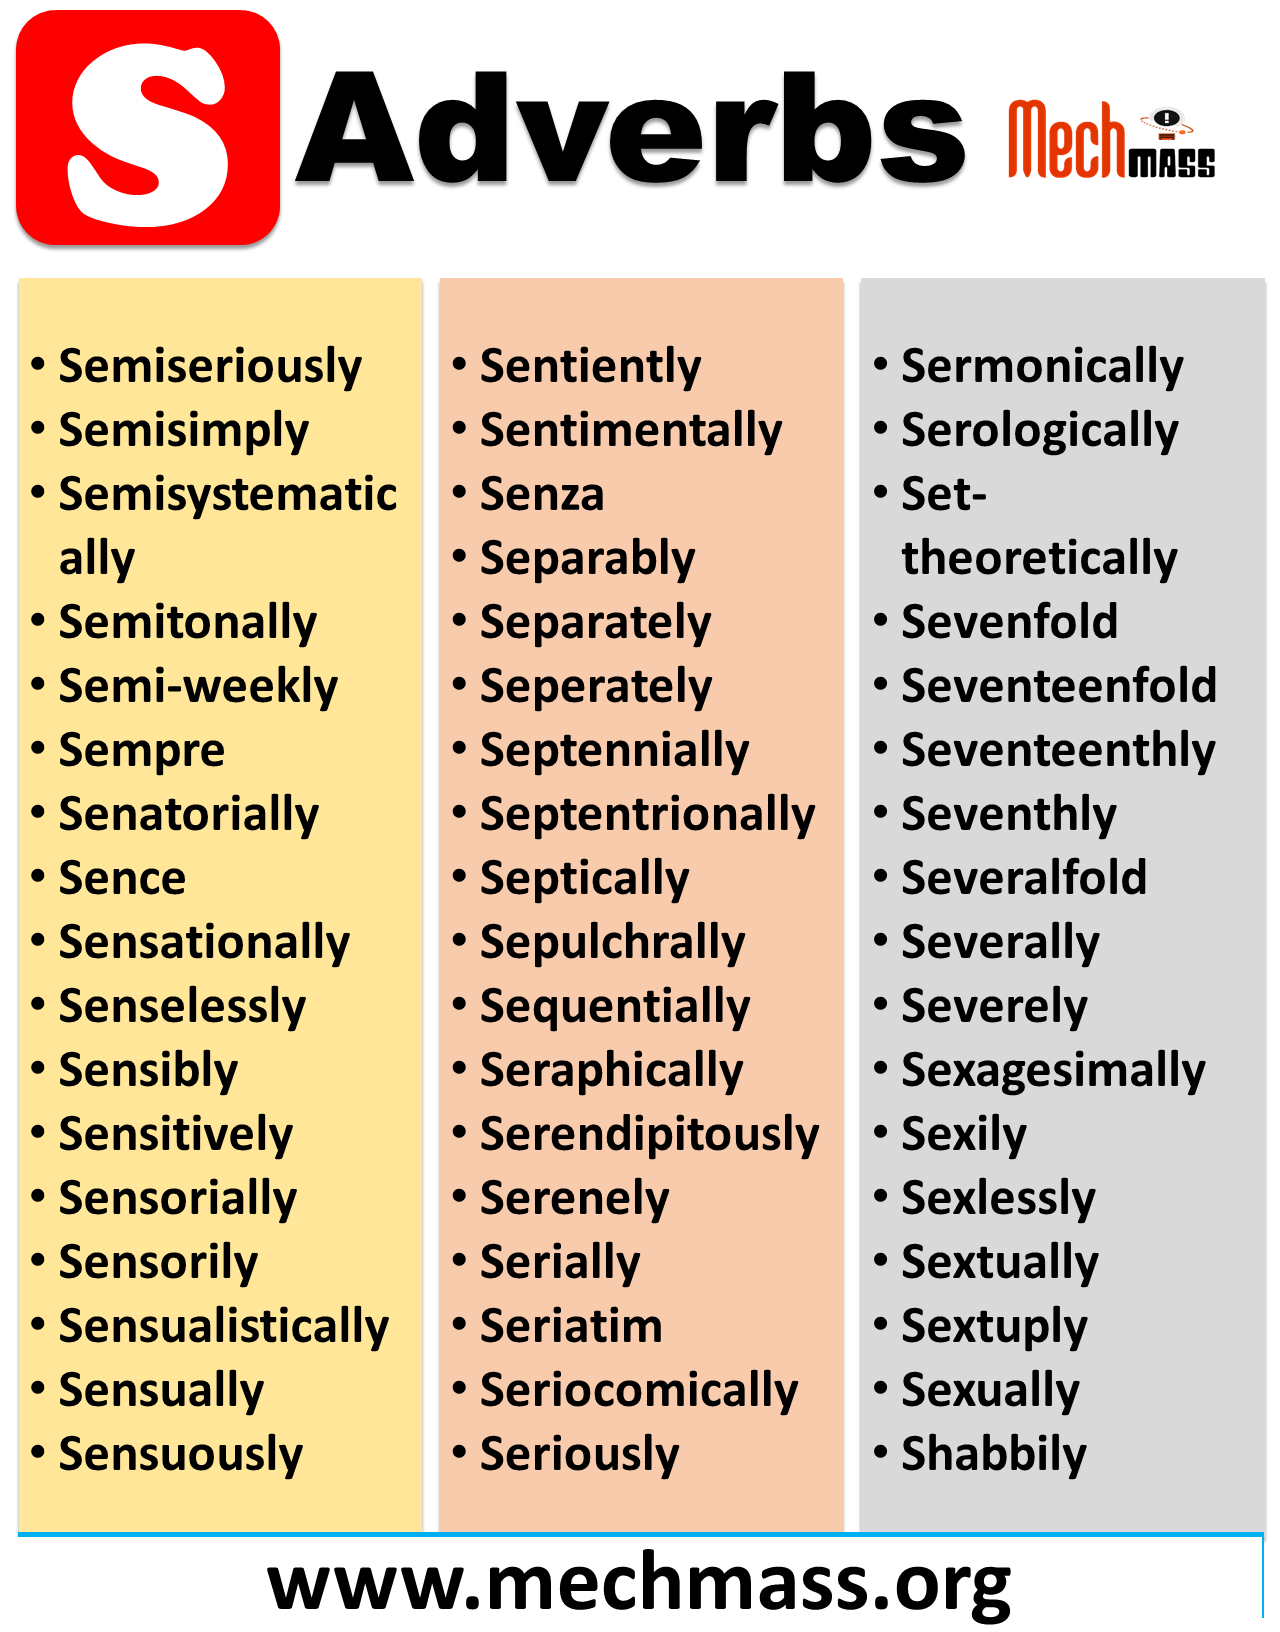 List of adverbs starting with s